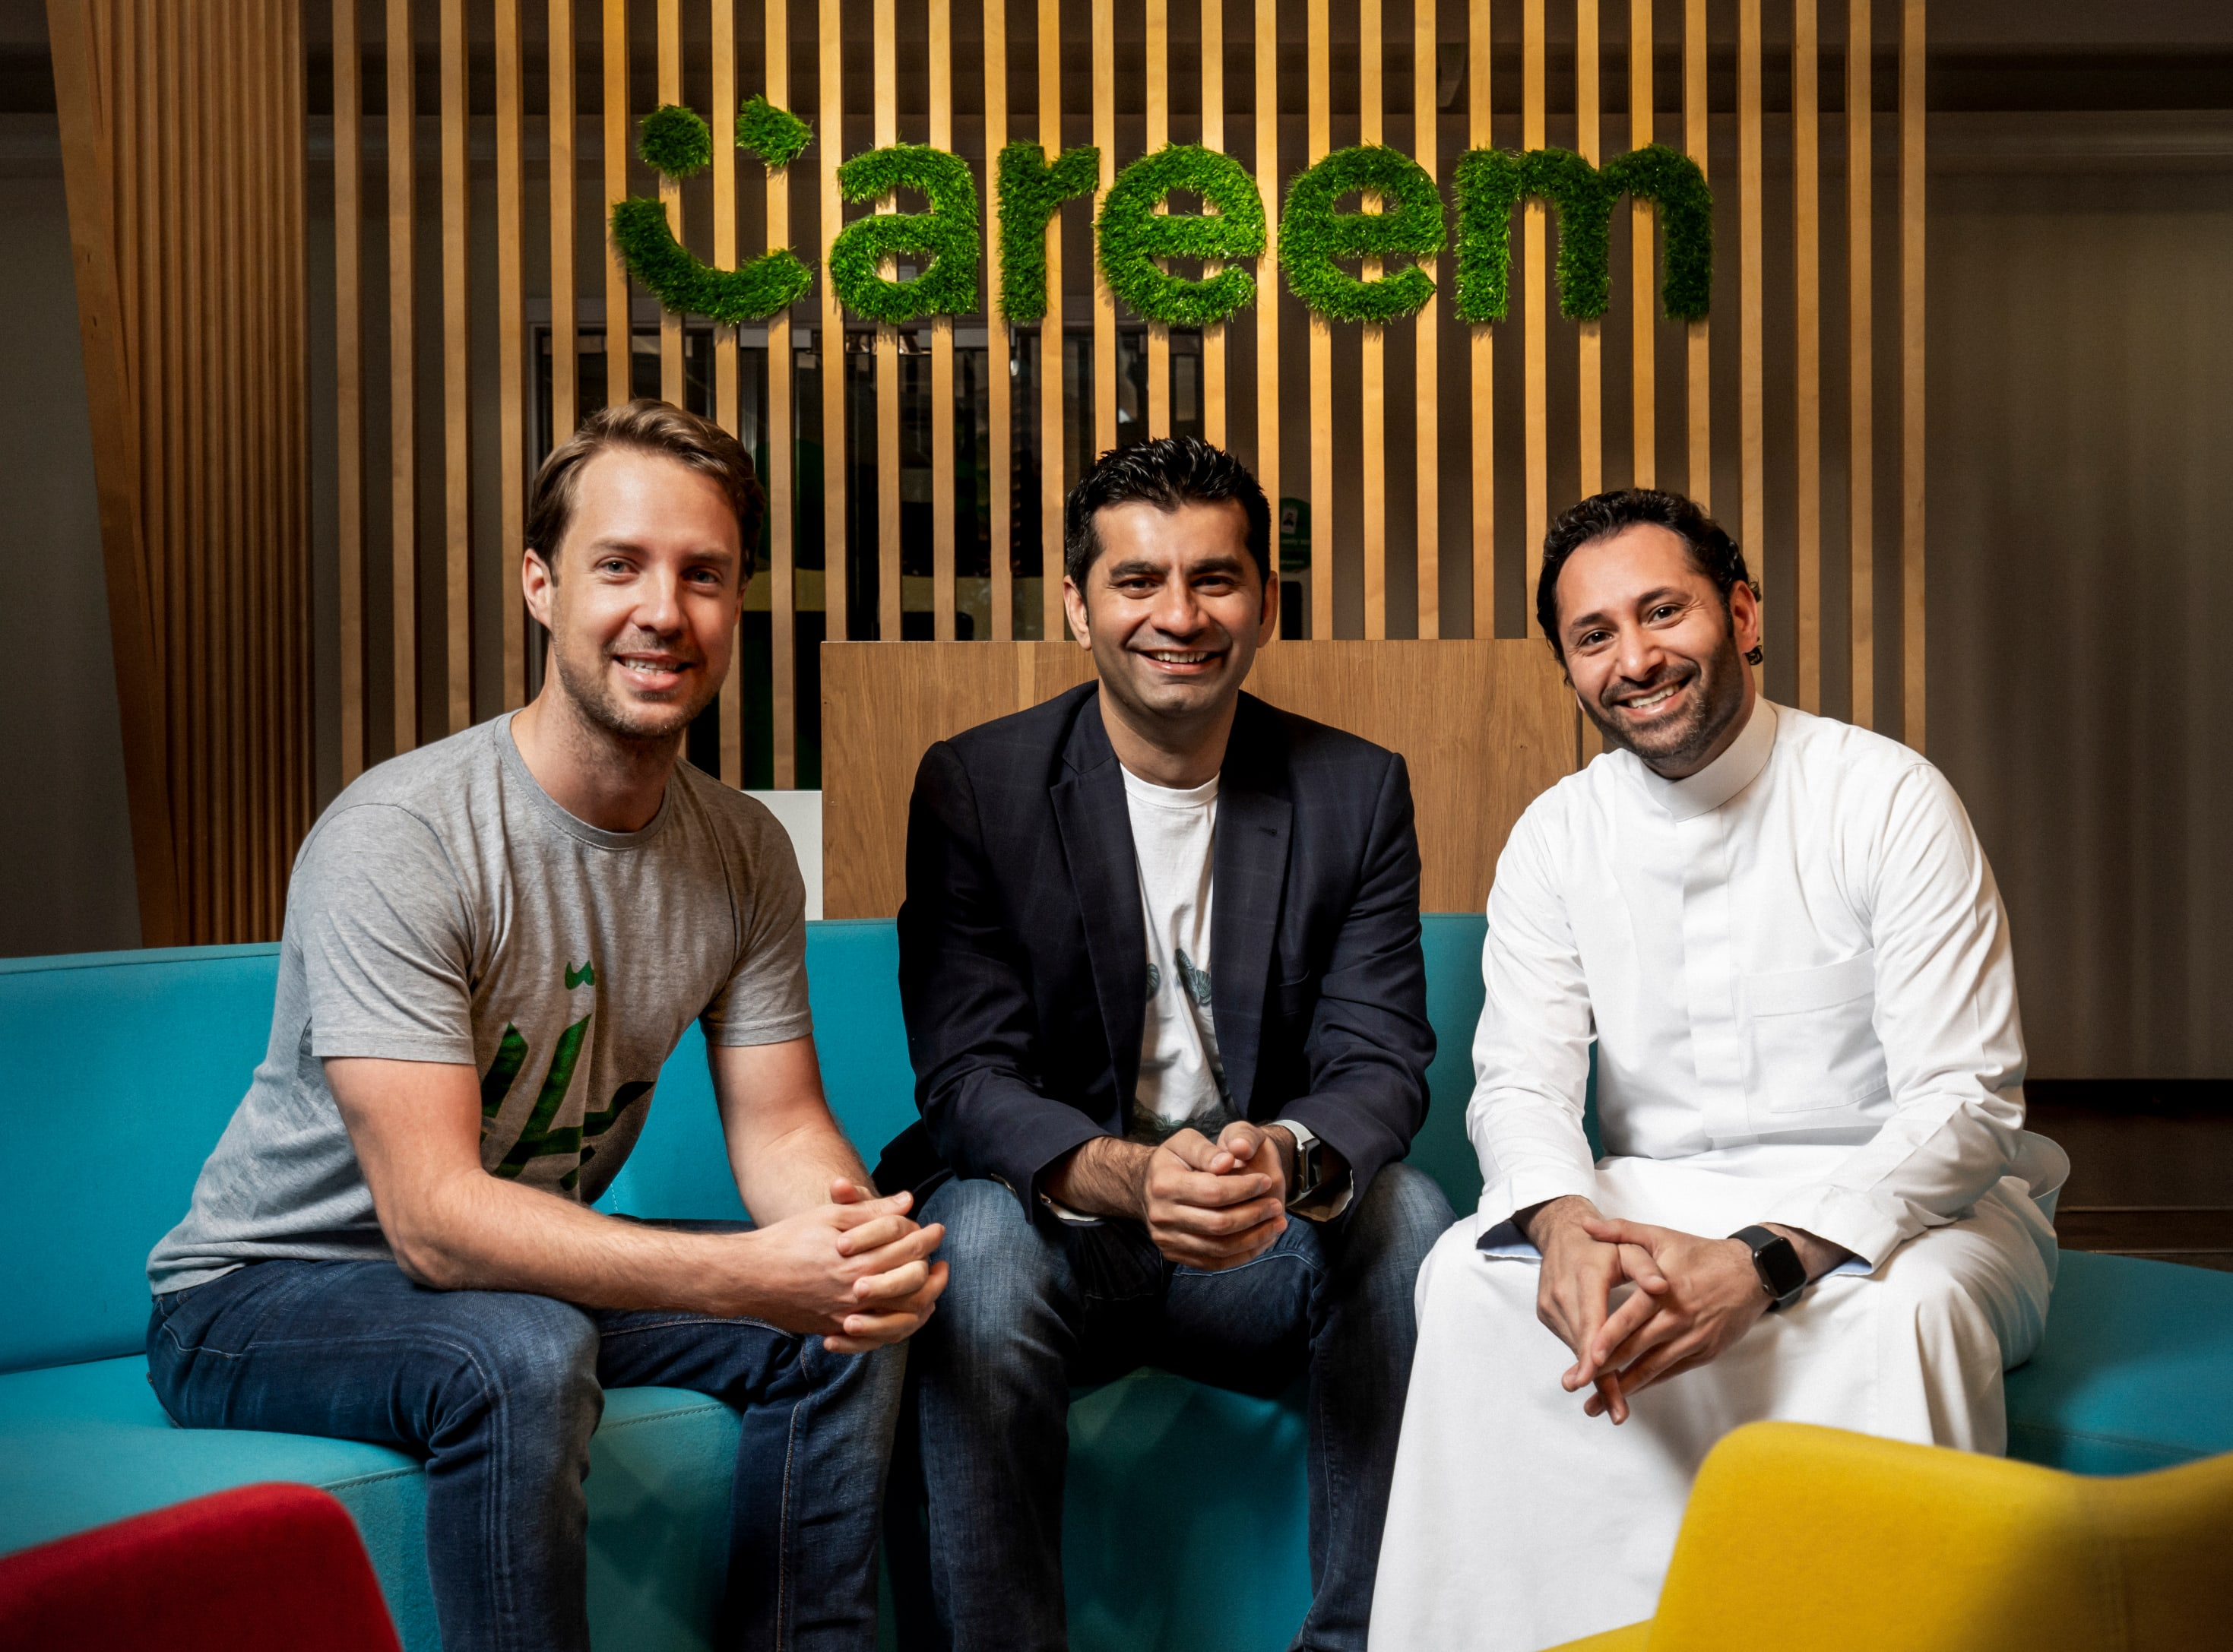 Careem co-founders Magnus Olsson, Mudassir Sheikha and Abdulla Elyas-min